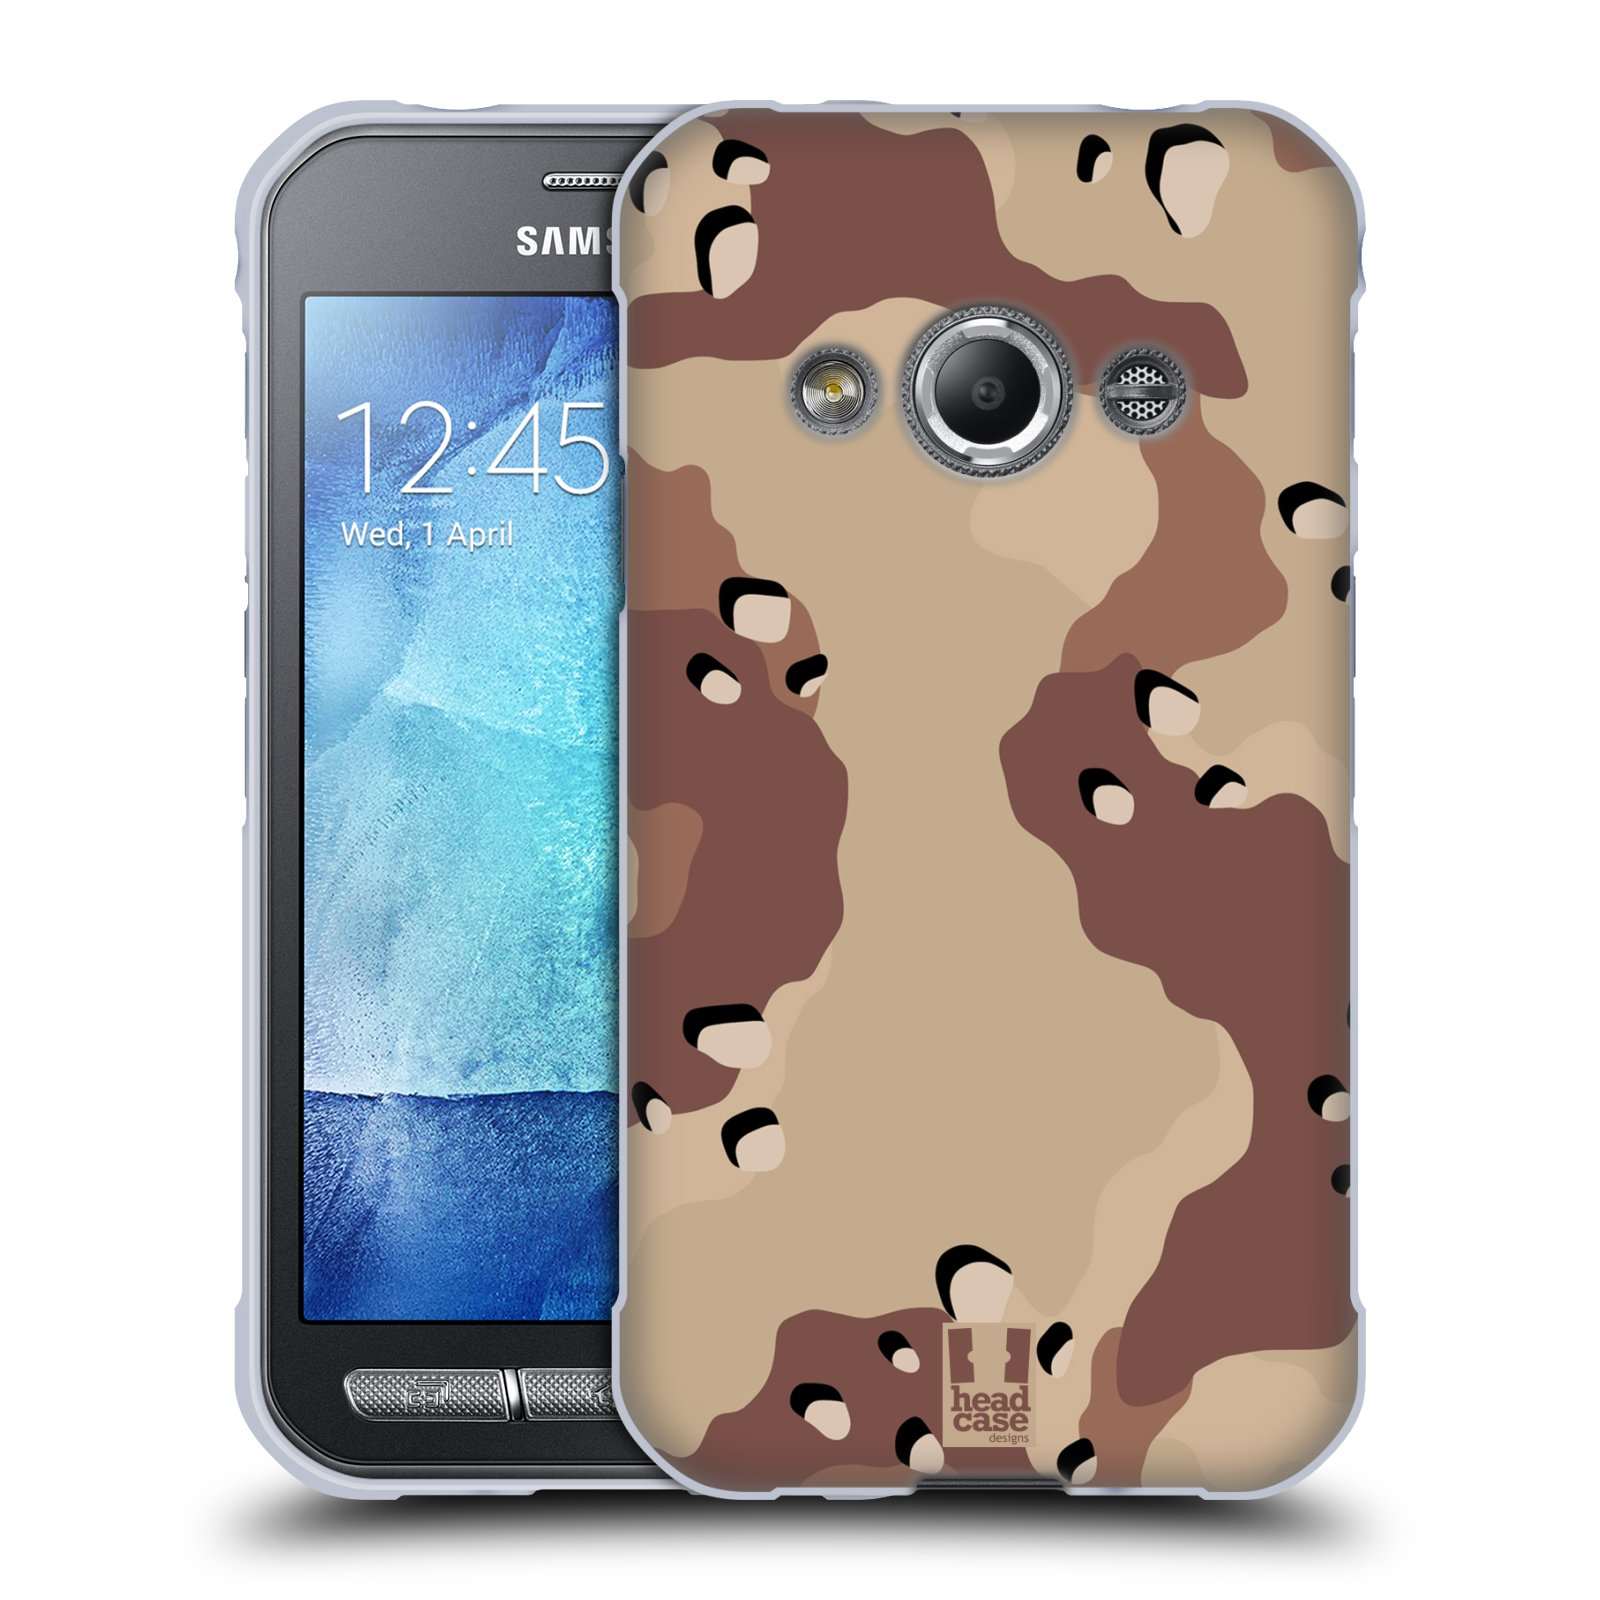 samsung x cover 3 custodia